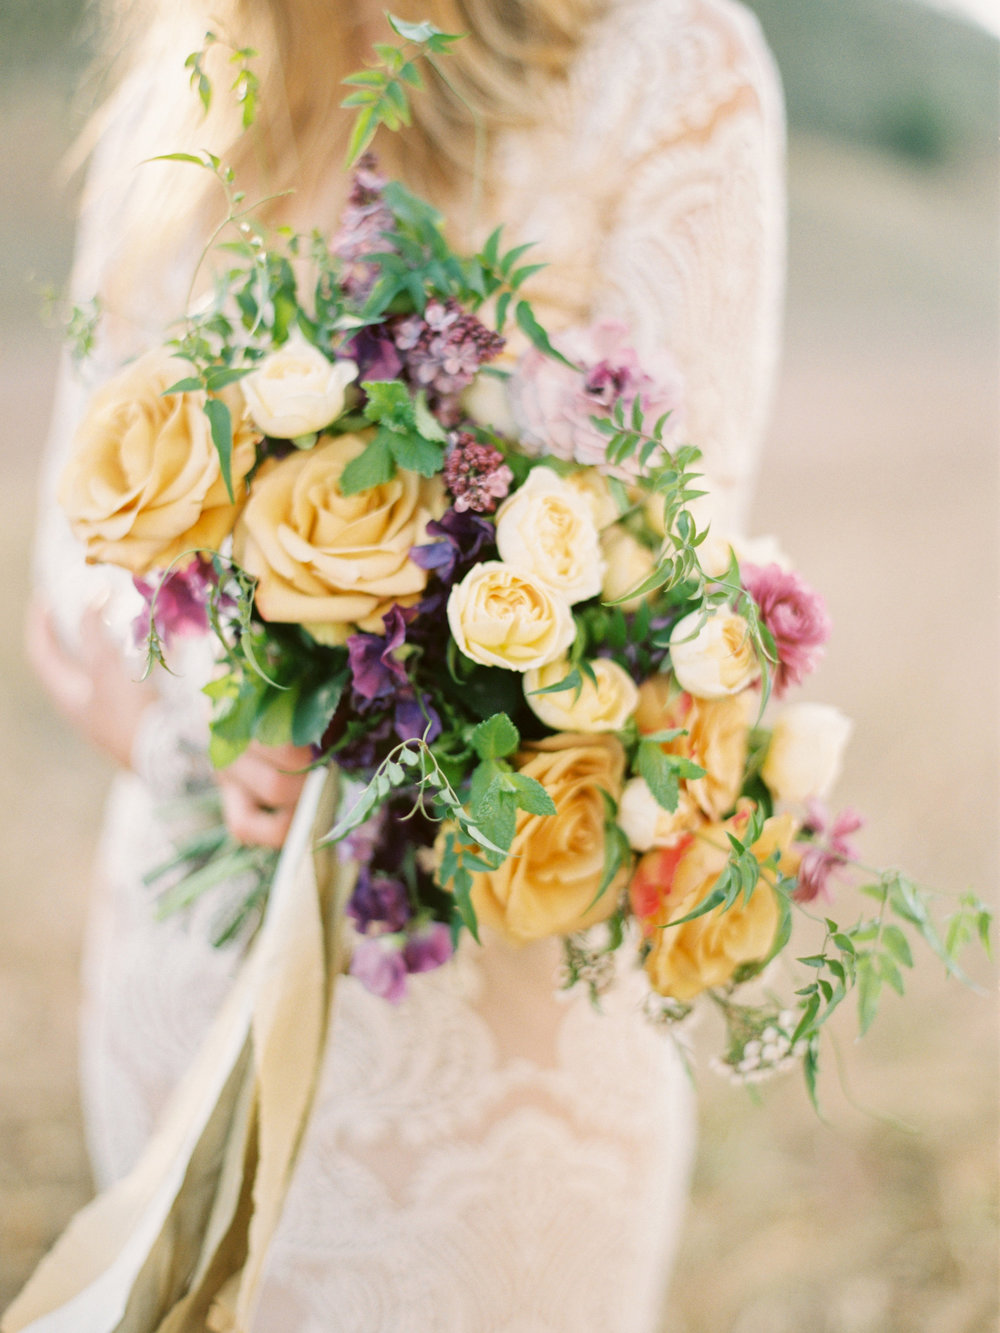 Image by Ashley Ludaescher  / Florals by Wilder Floral Co. ©